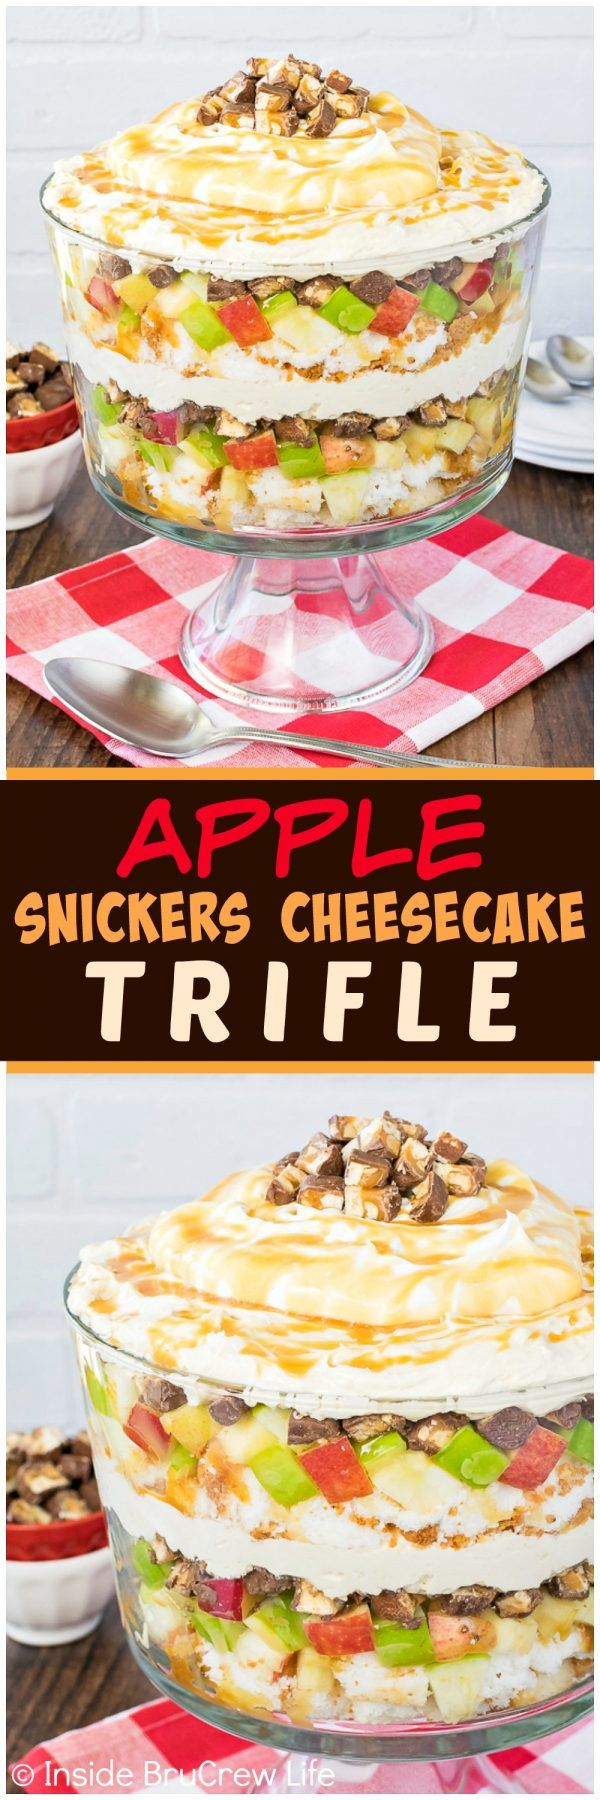 Apple Snickers Cheesecake Trifle